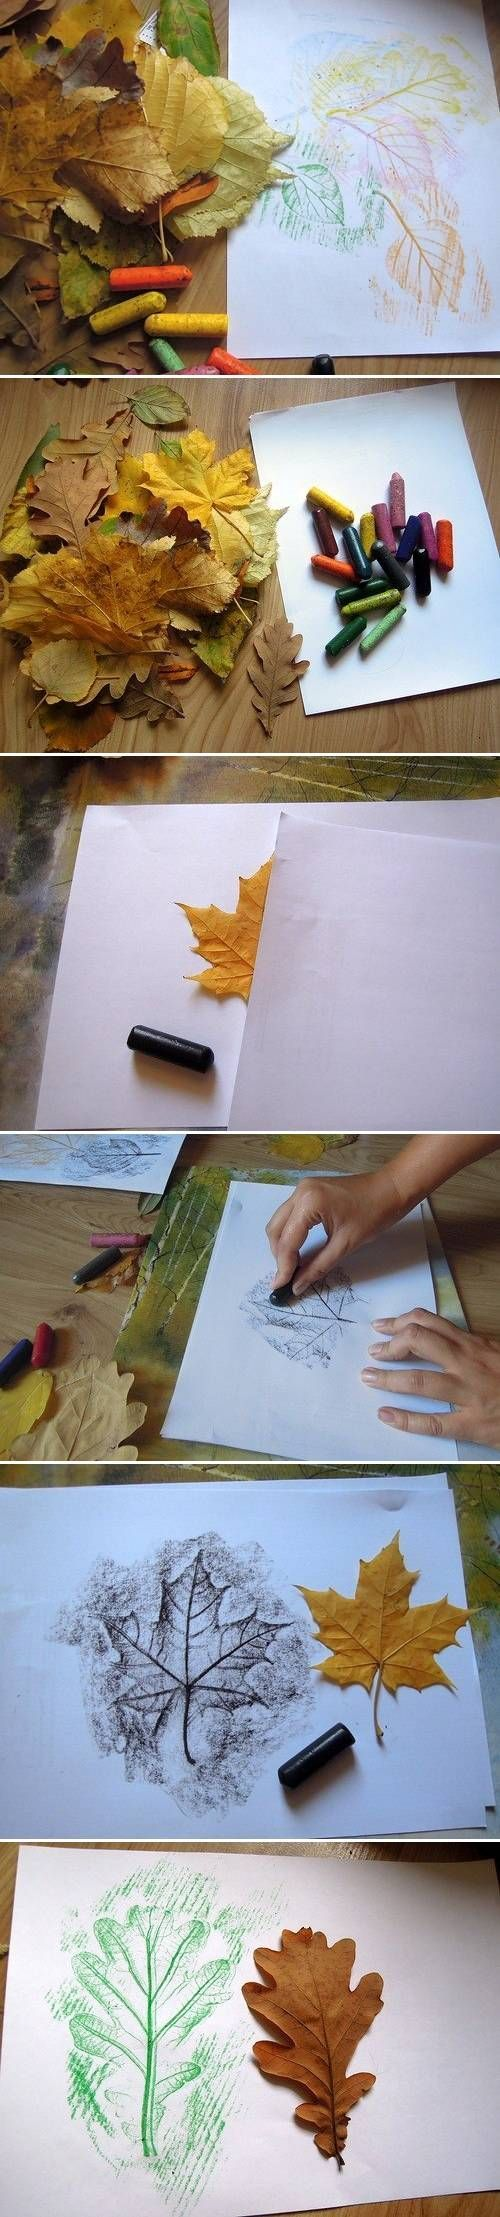 How to Draw Leaves step by step DIY tutorial instructions / How To Instructions on imgfave